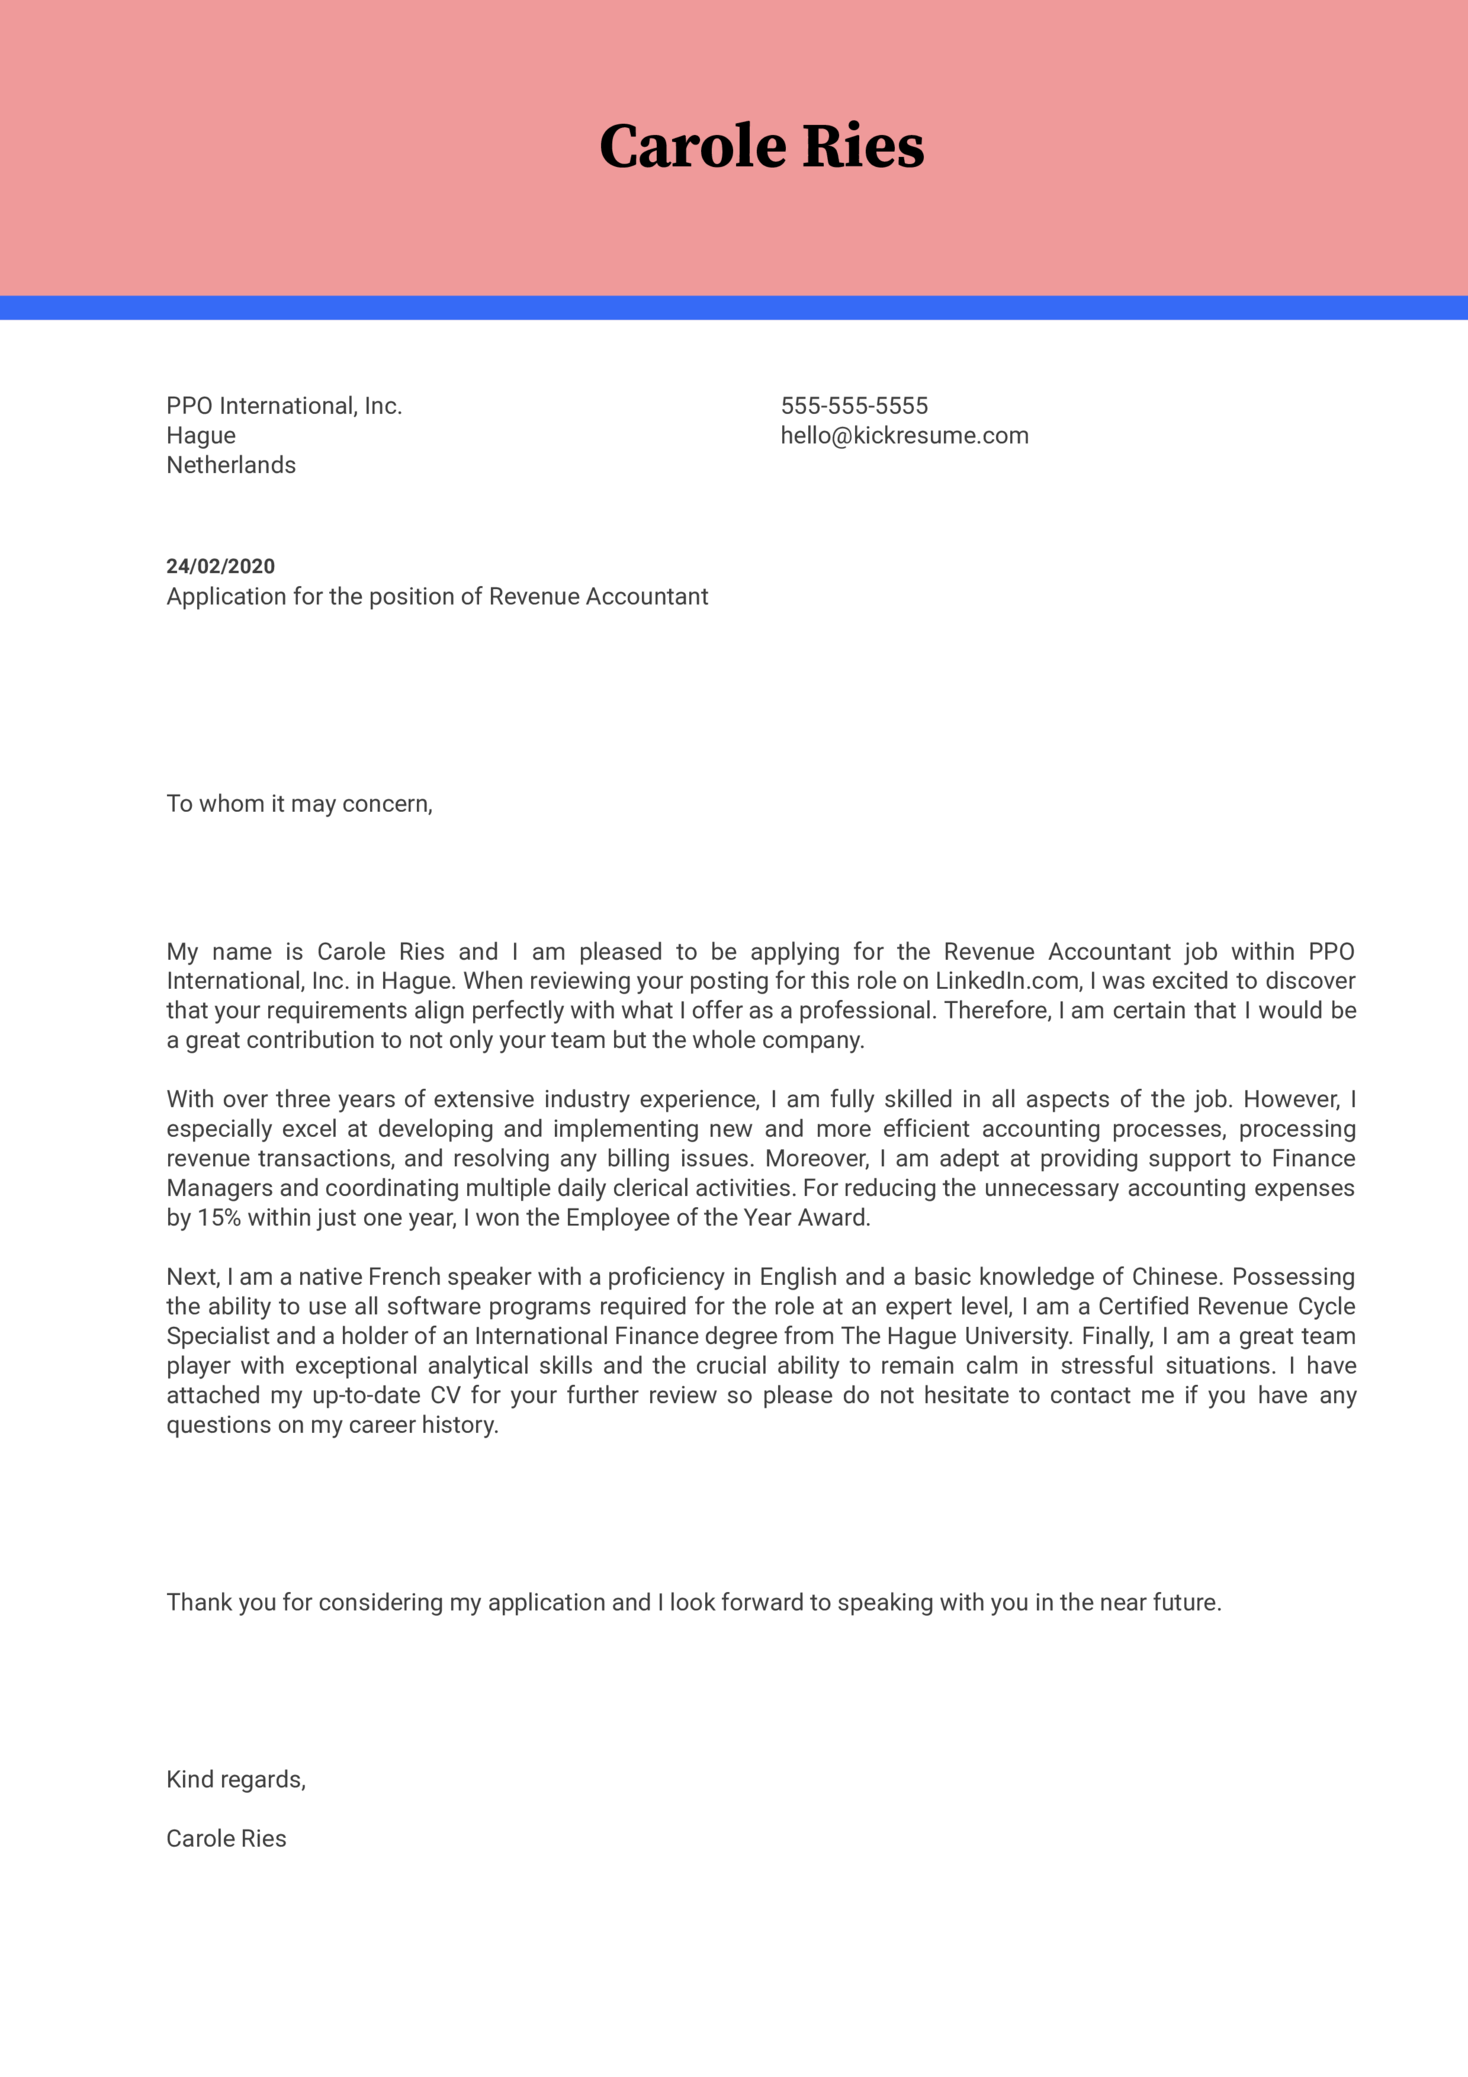 Revenue Accountant Cover Letter Example